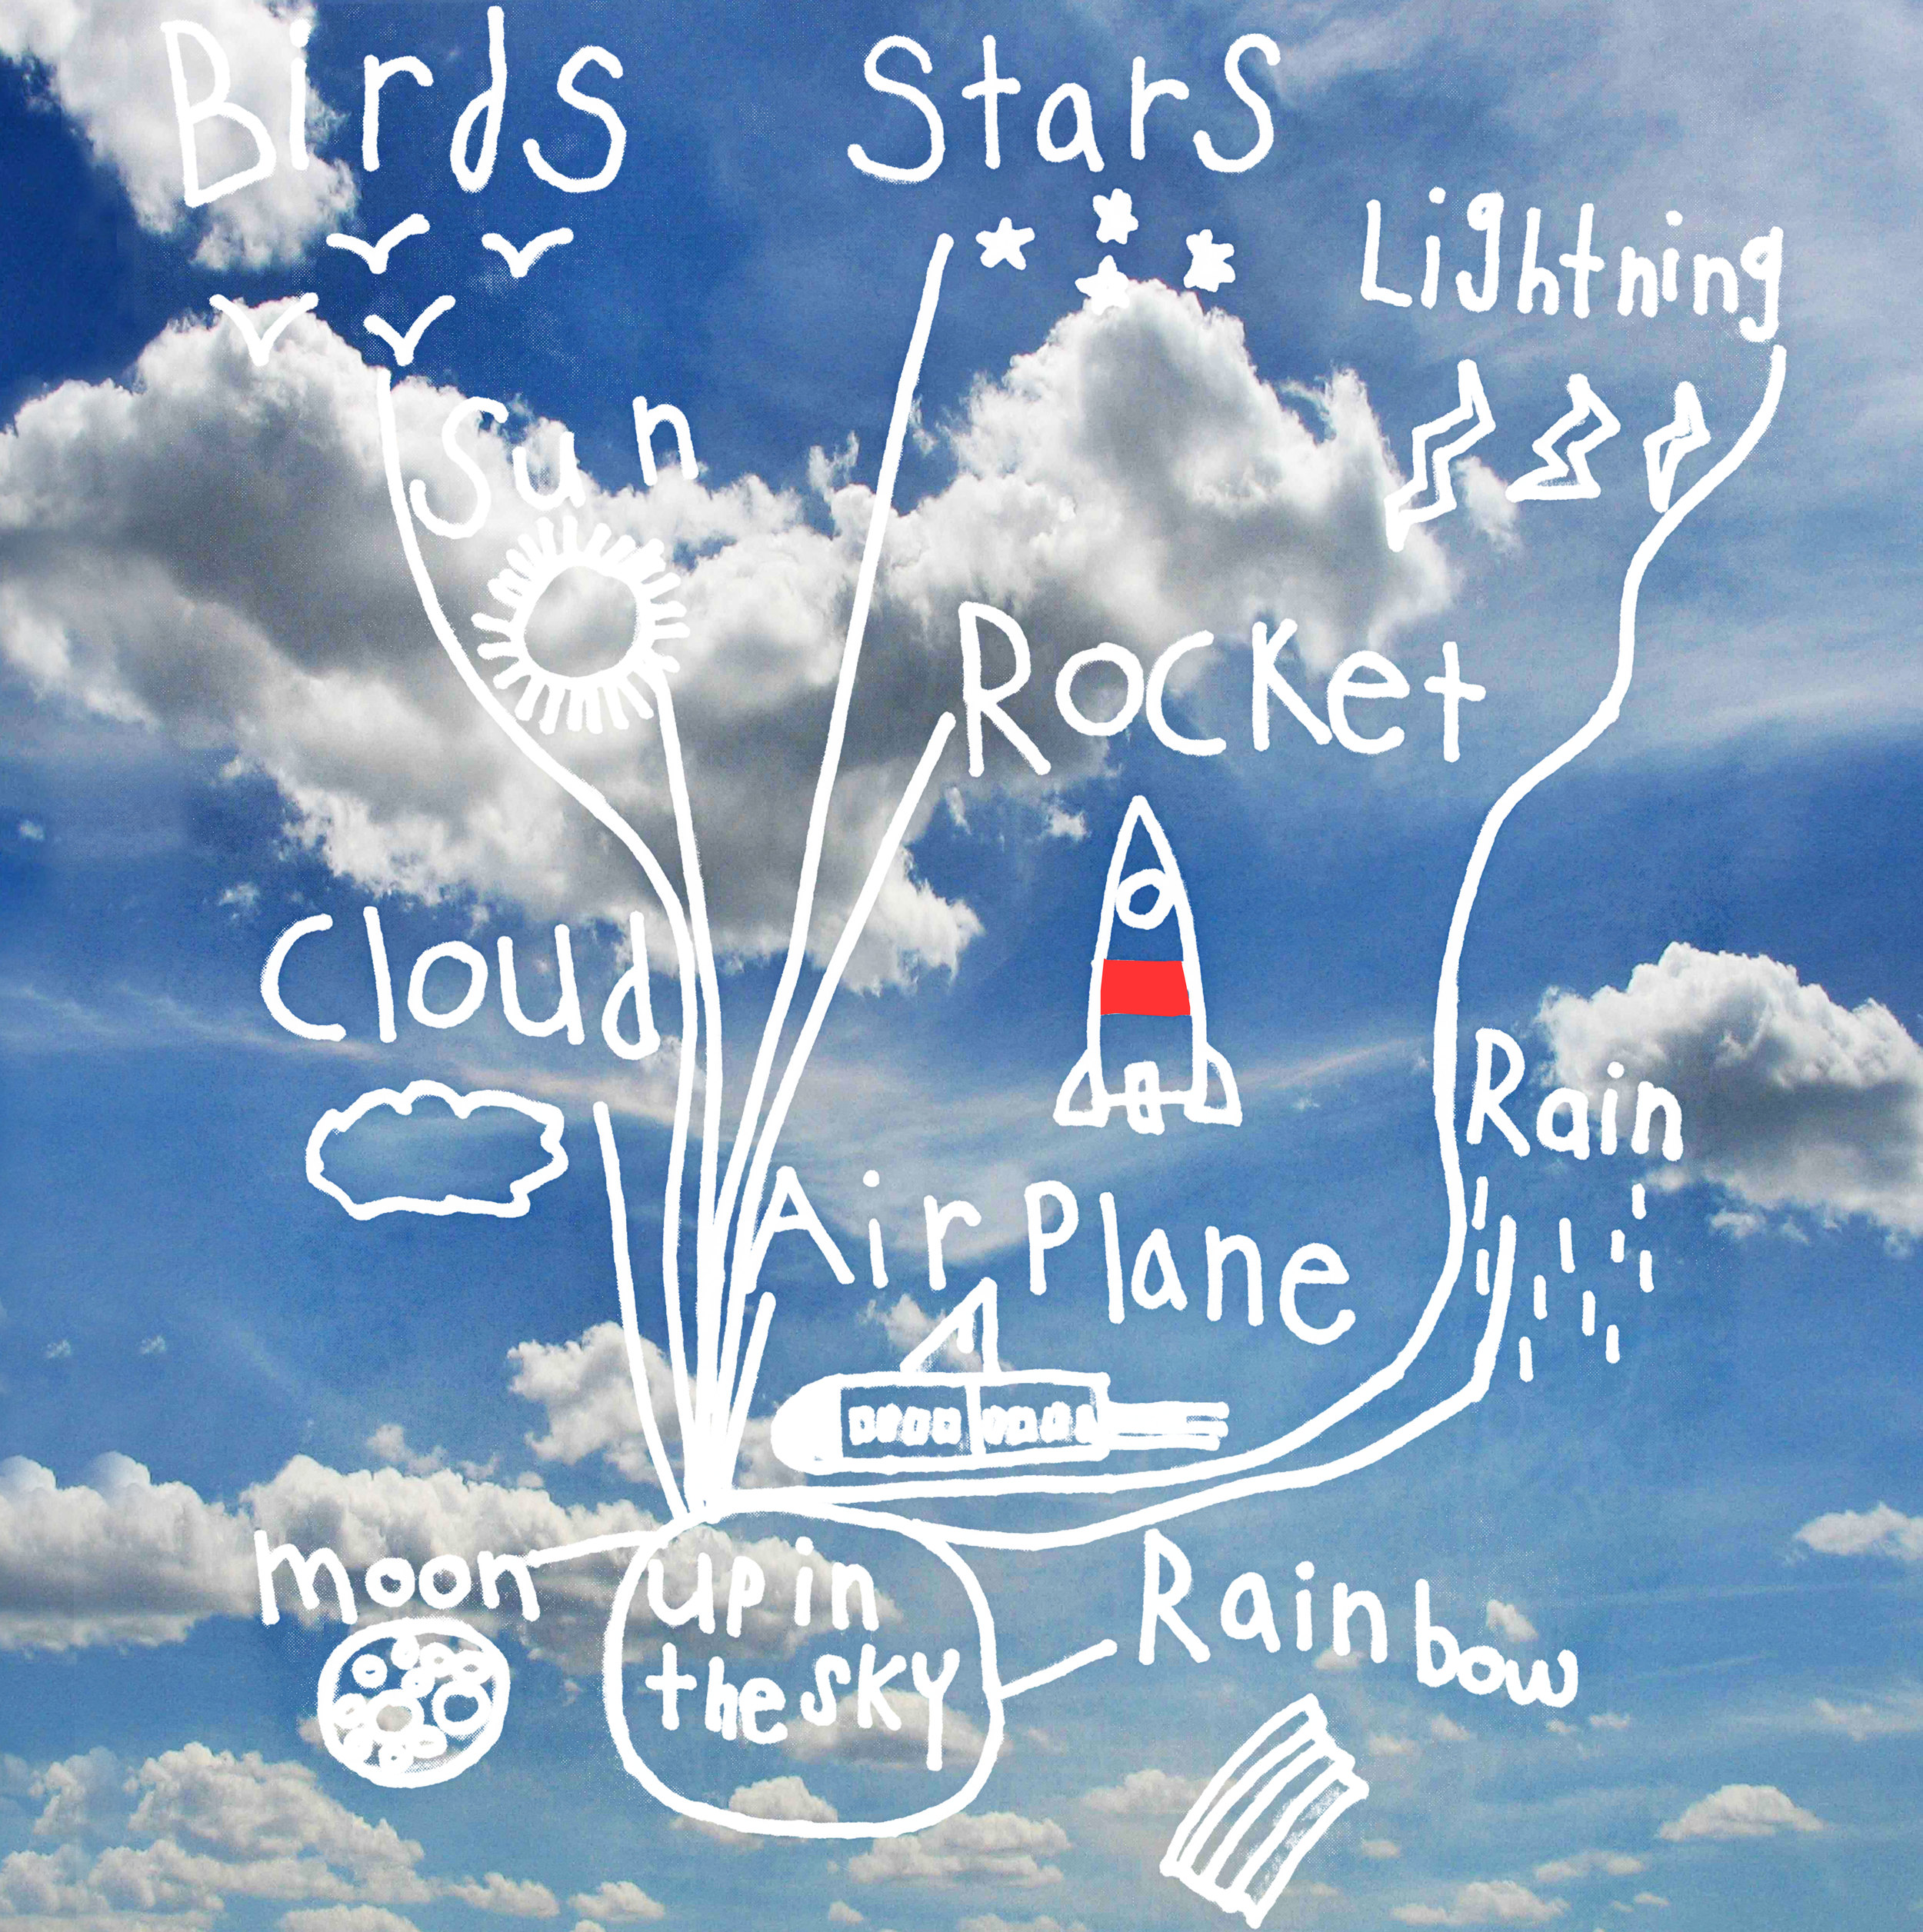 Clouds+rocket.jpg